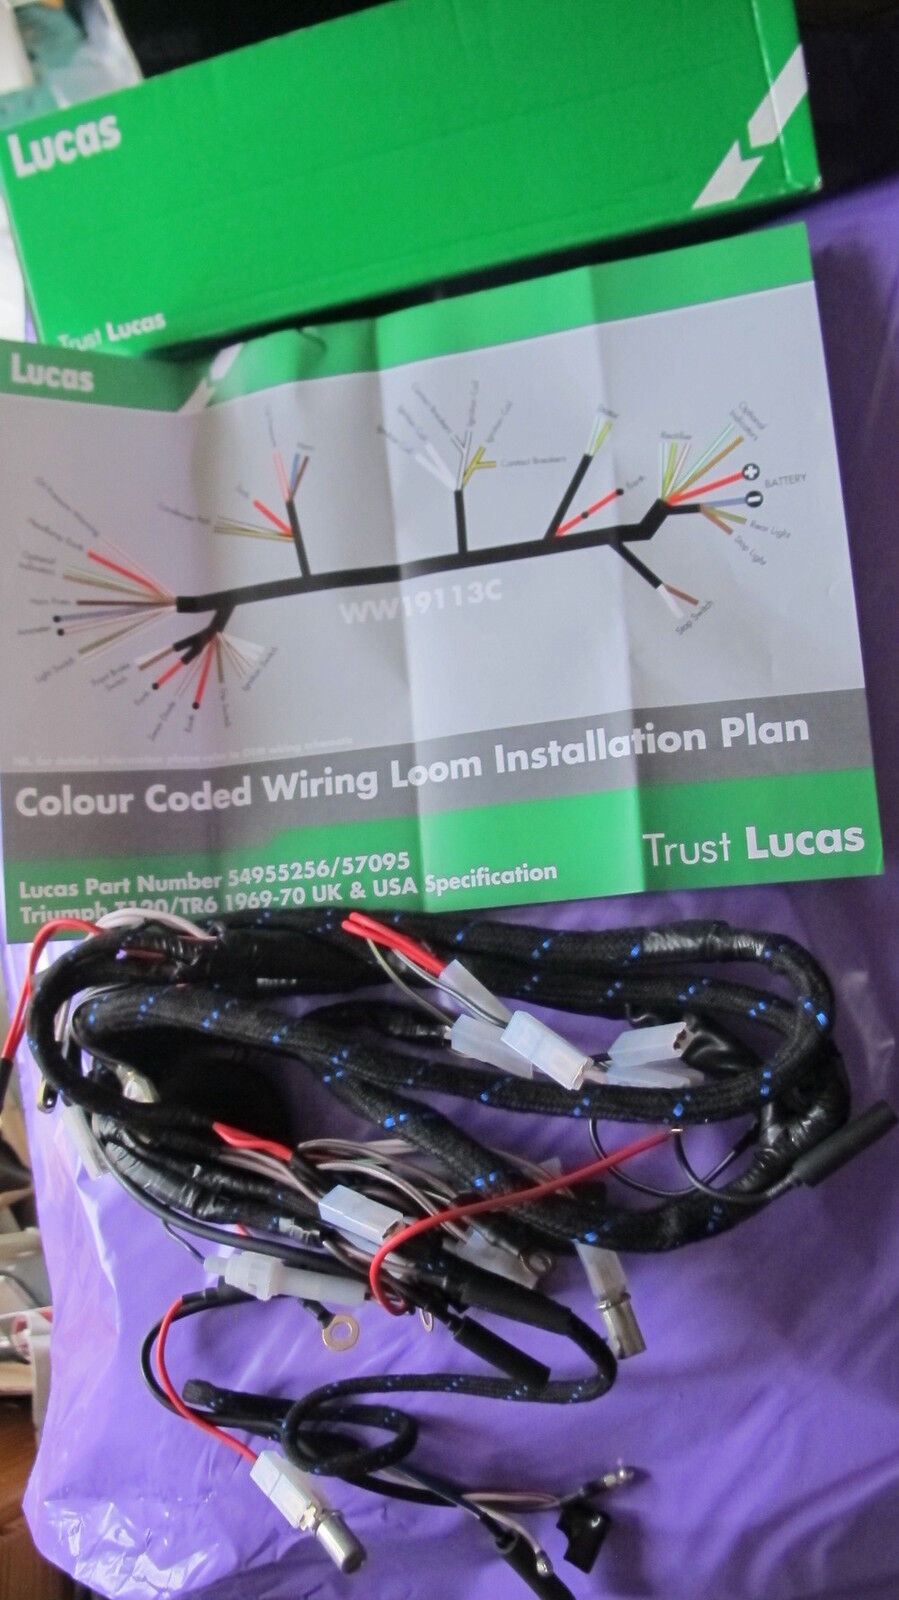 braided lucas 54955256 wiring harness triumph t100 tr6 t120 1969 70norton secured powered by verisign